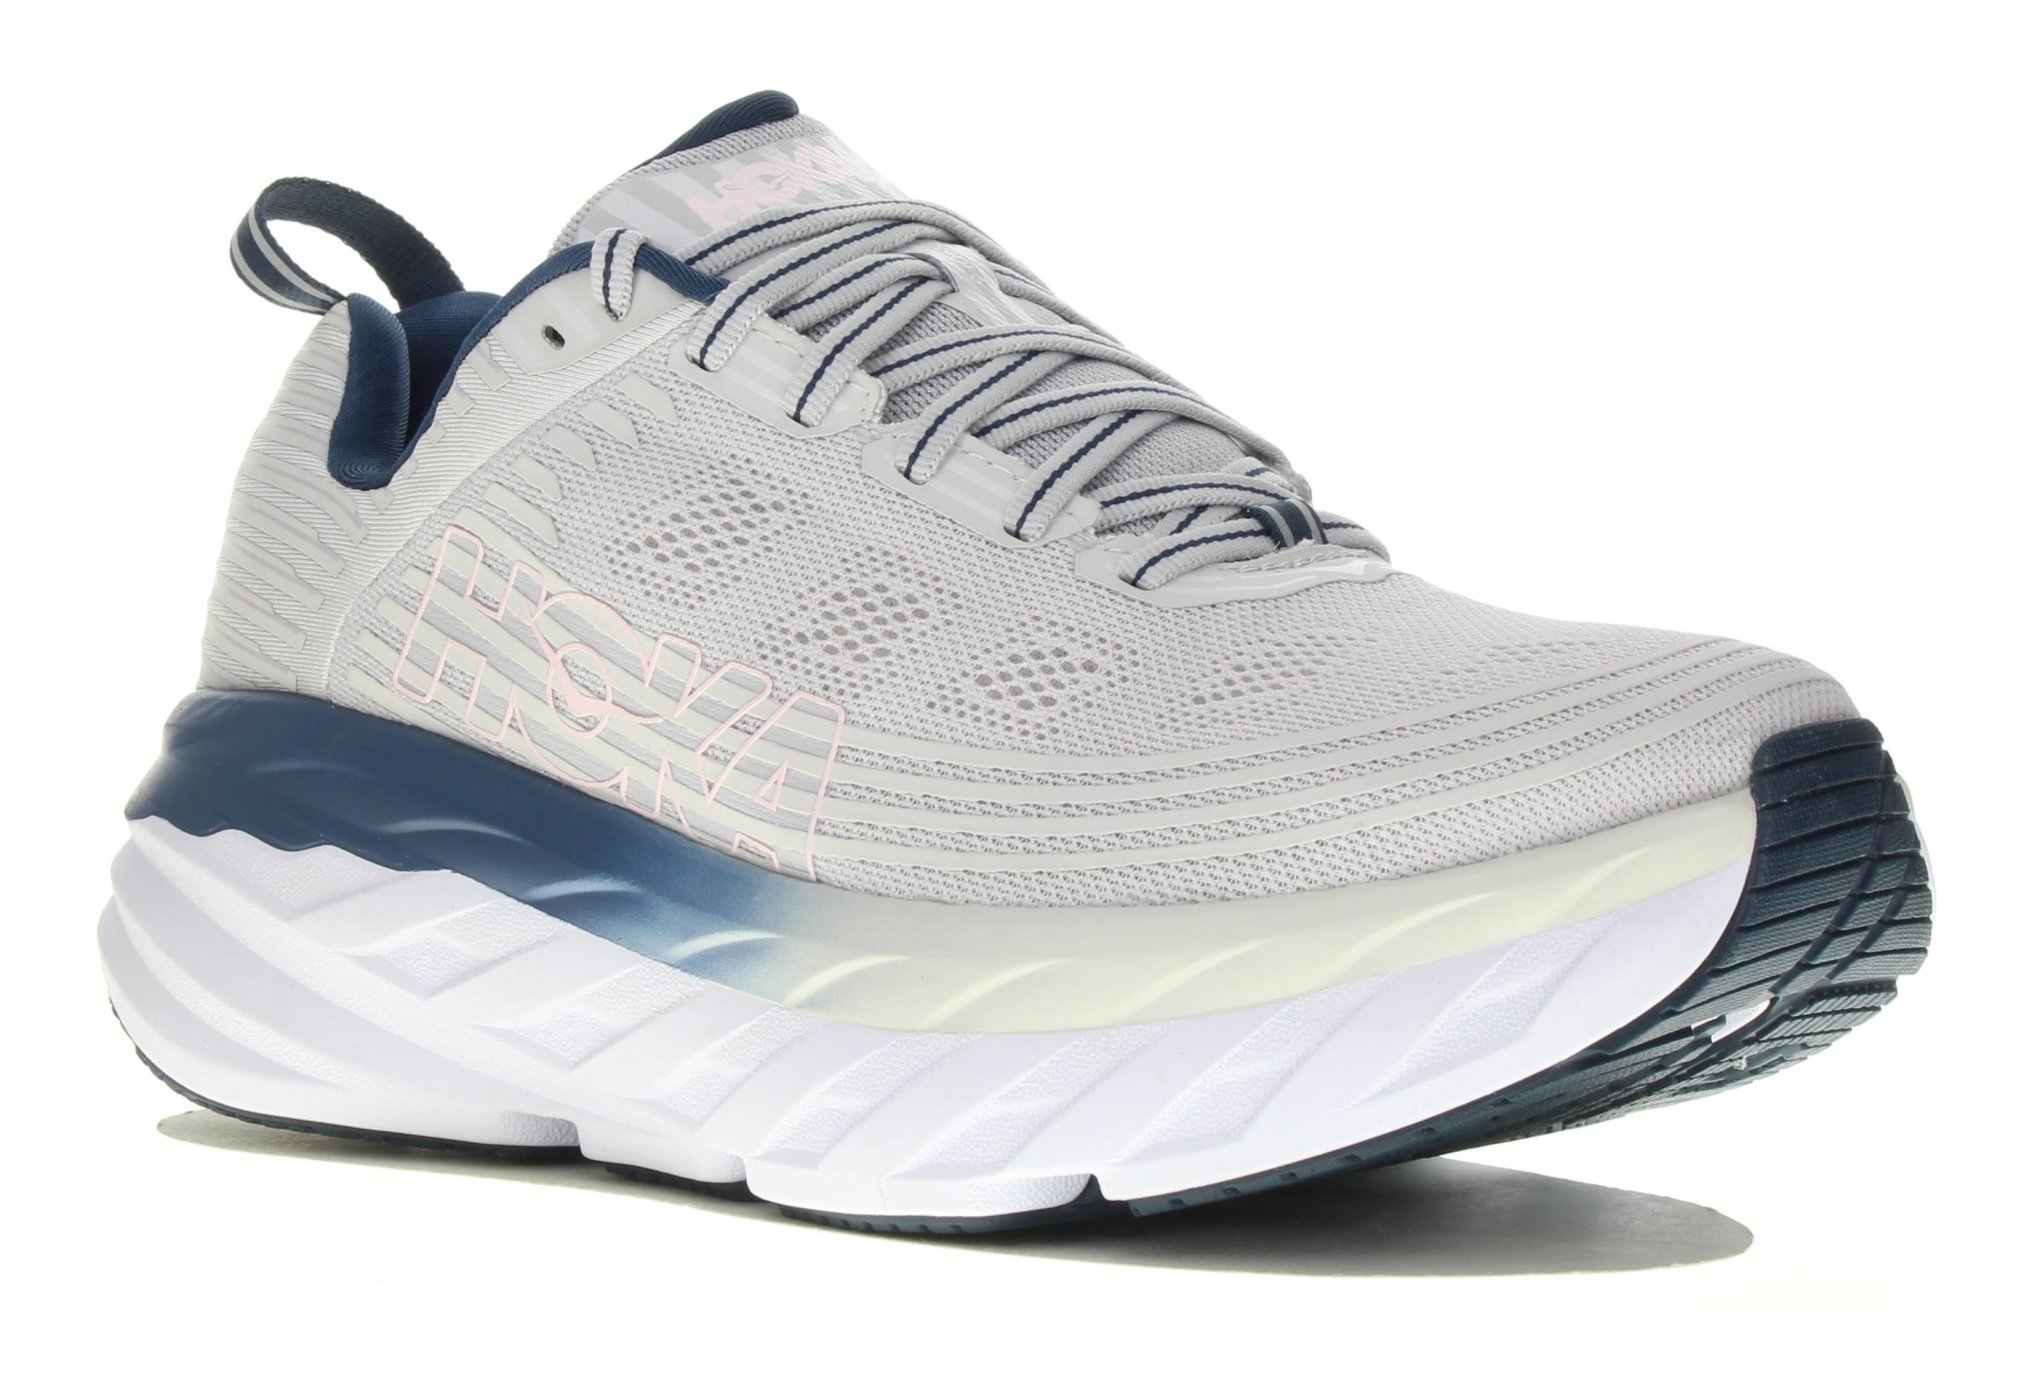 Hoka One One Bondi 6 déstockage running